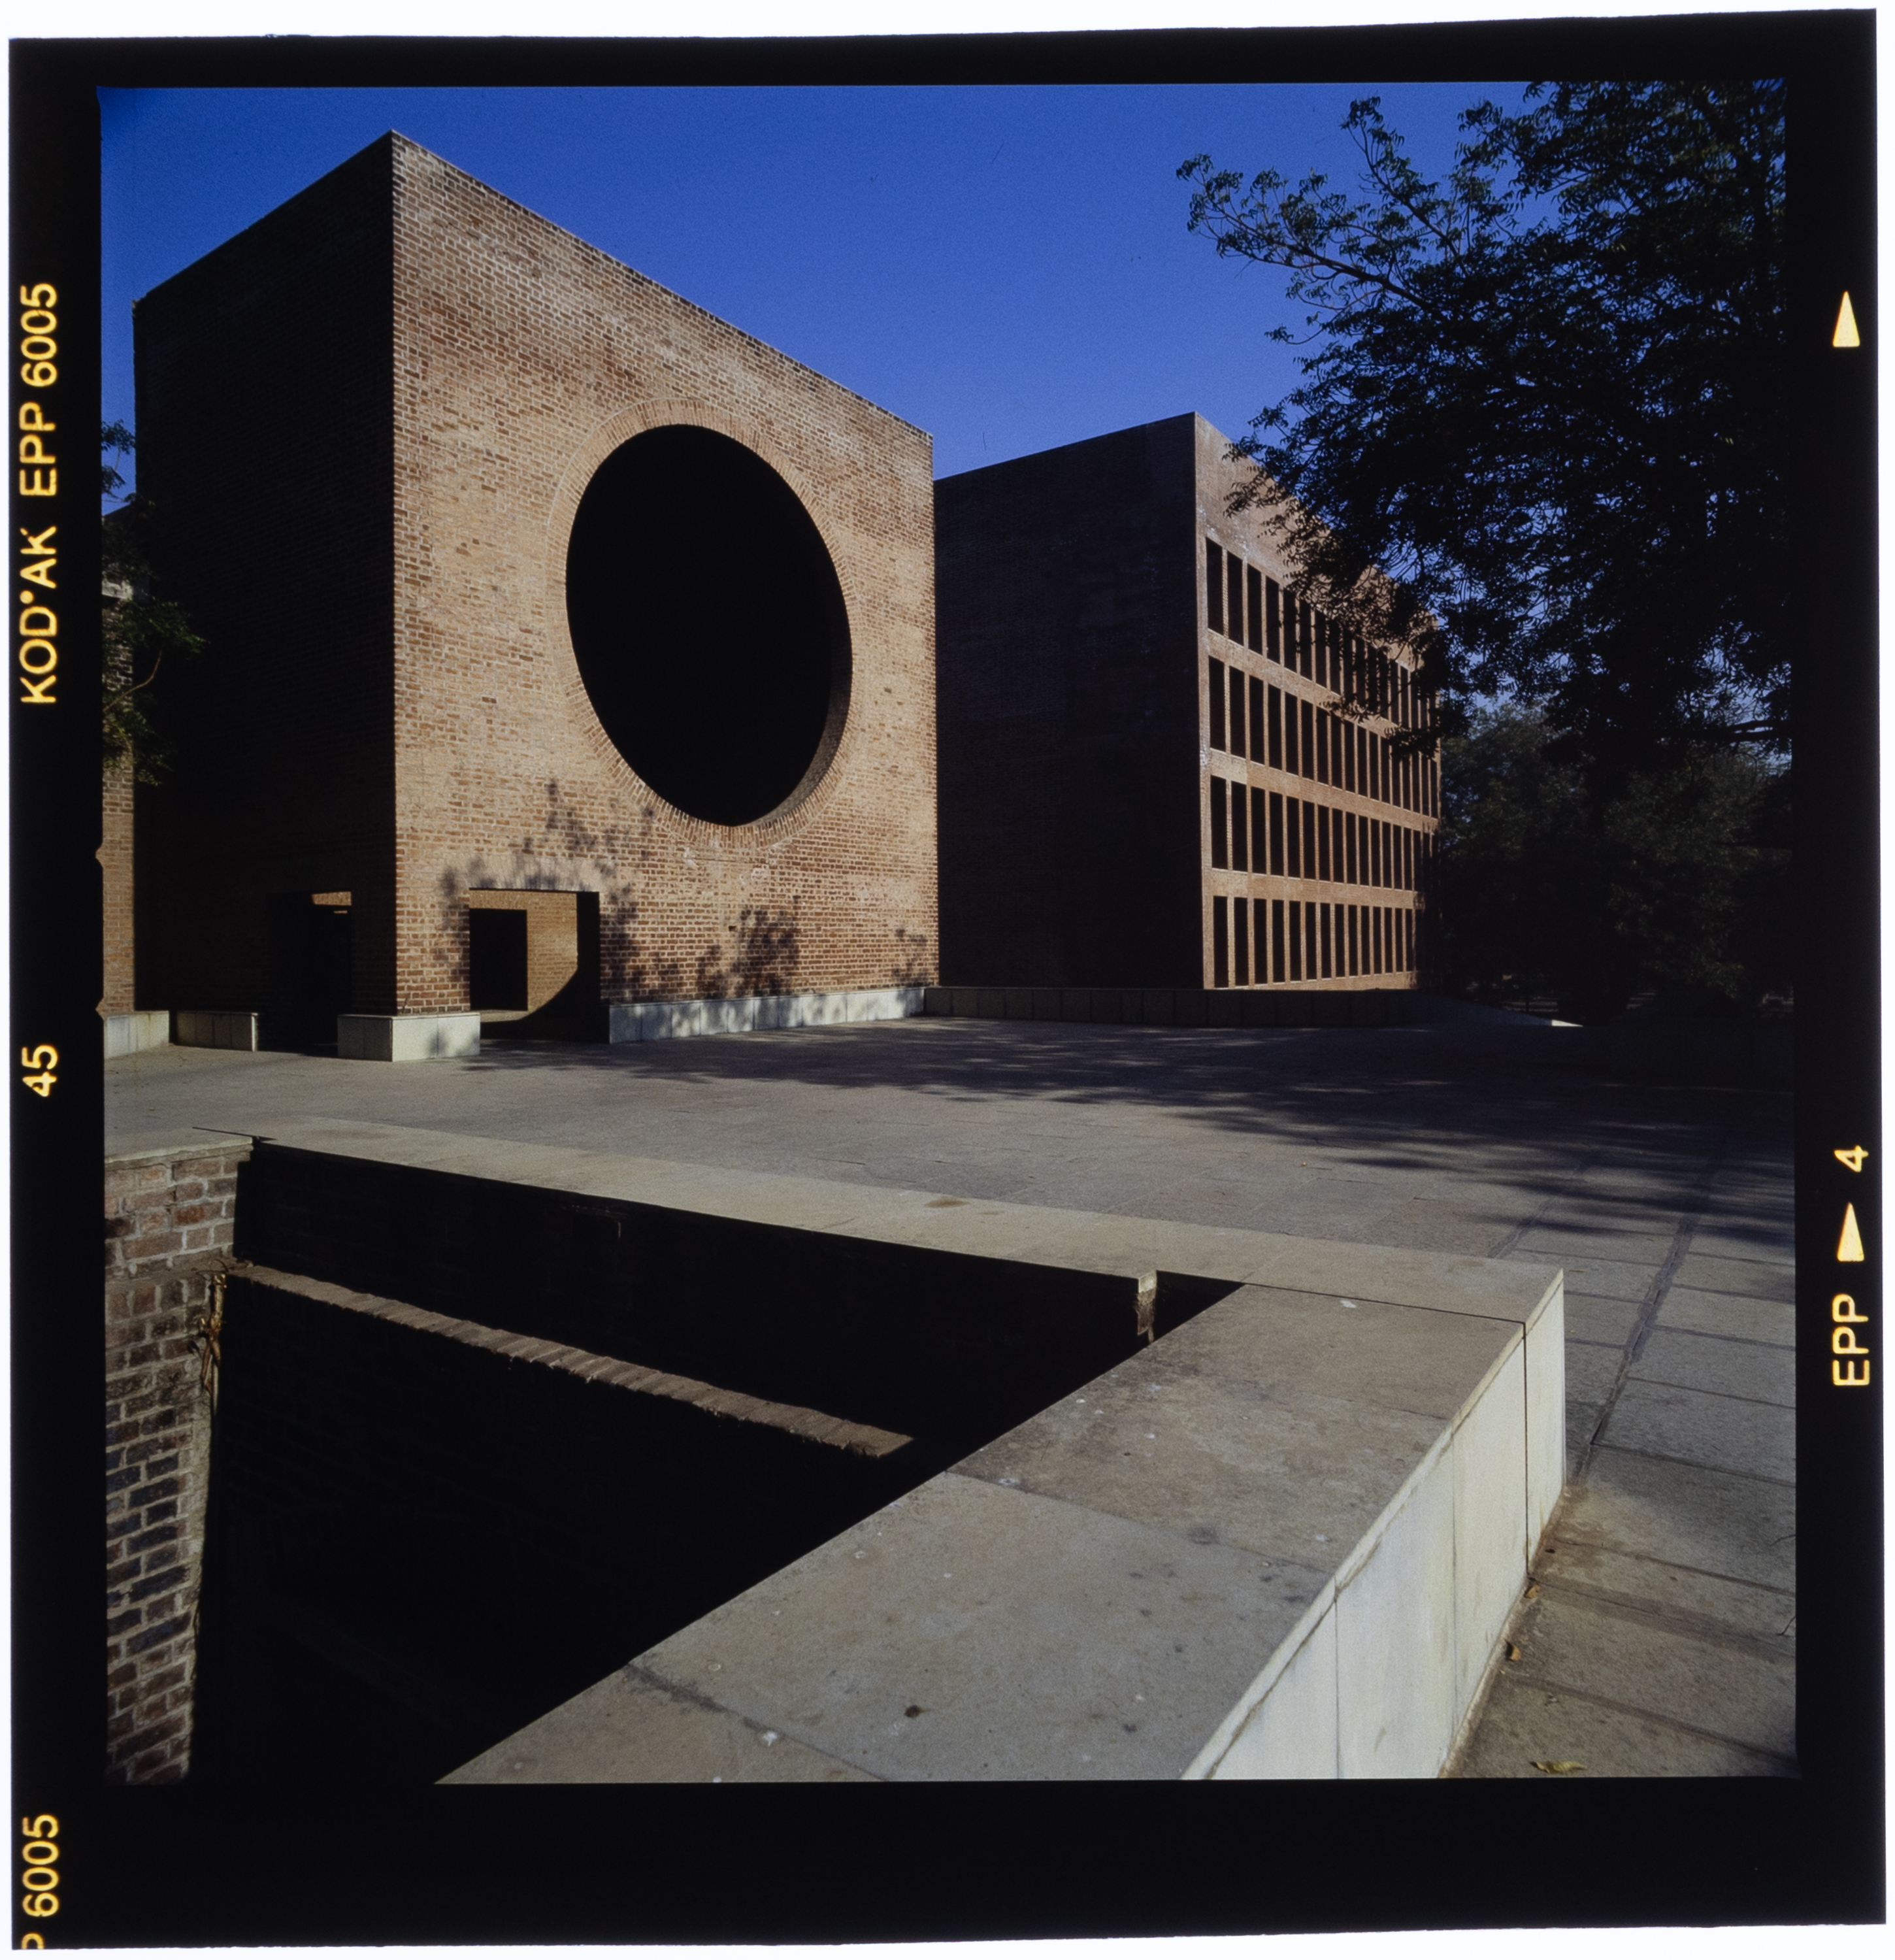 Roberto Schezen, Louis Kahn, Indian Institute of Management, Ahmedabad, Gujarat, India 1962-74, 2001 ca., Courtesy Fondazione MAXXI